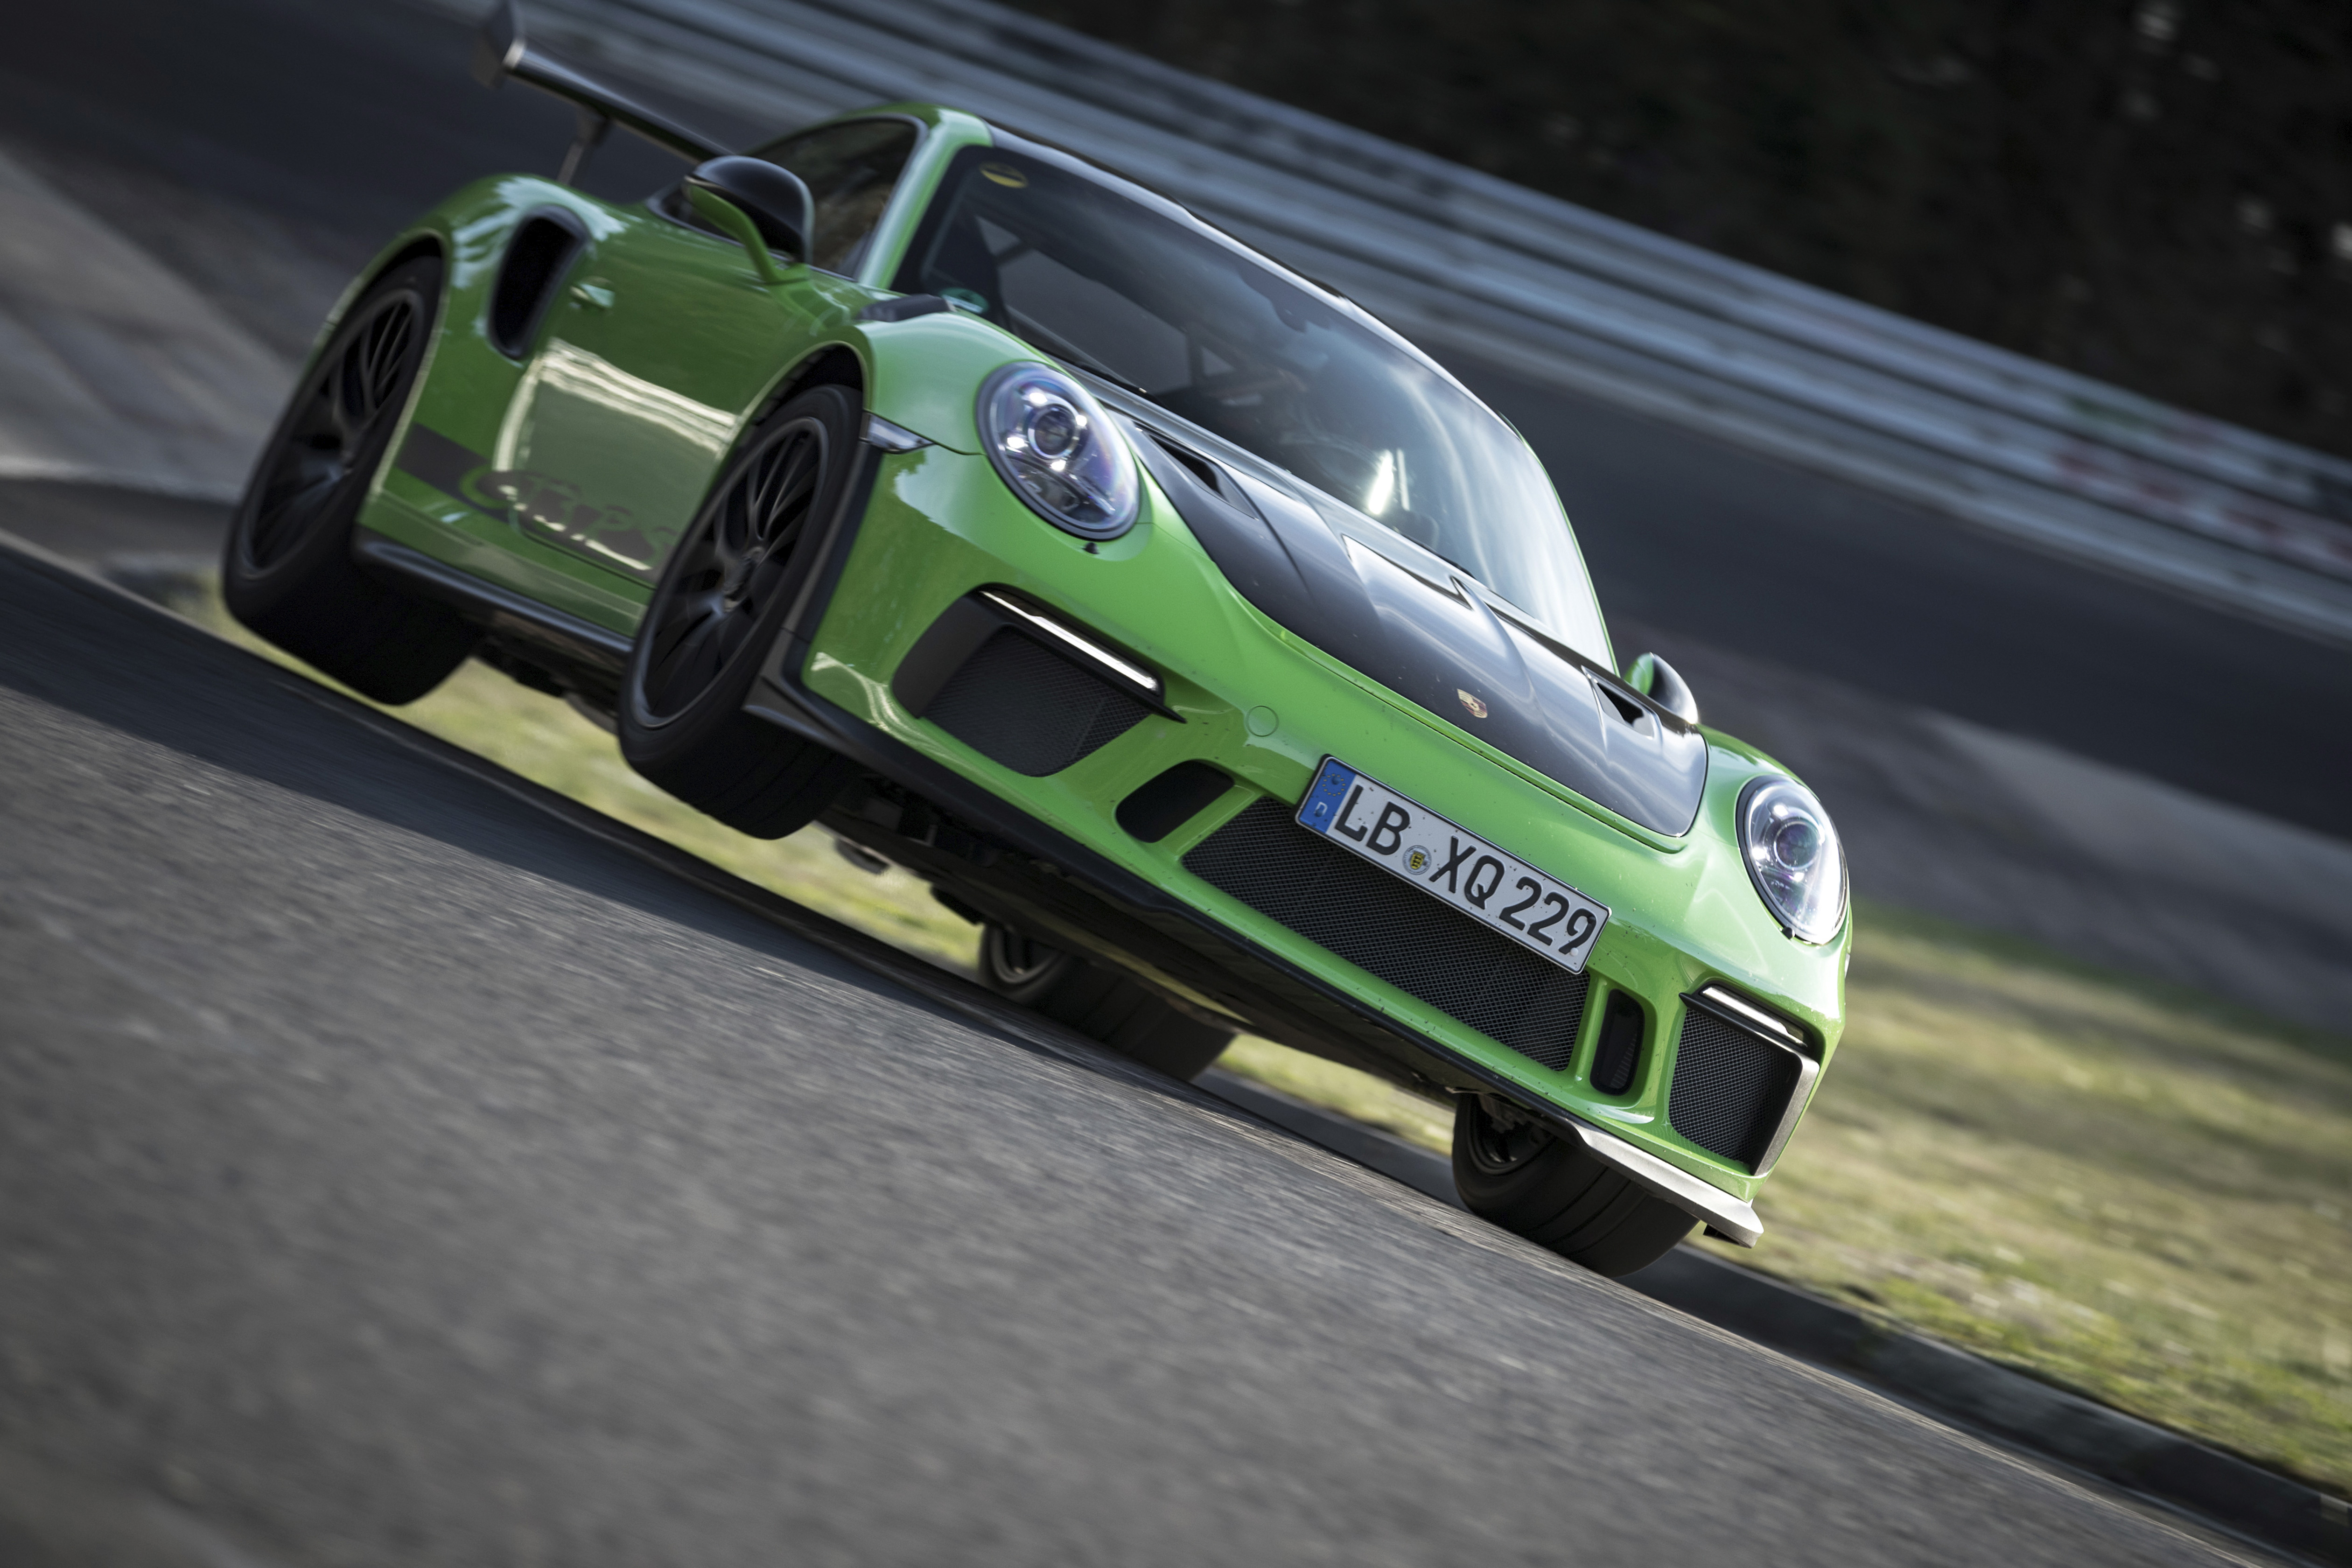 On April  The Porsche  Gt Rs Set Another Benchmark For Road Approved Sports Cars At The Nurburgring Nordschleife Circuit In Germany Porsche Works